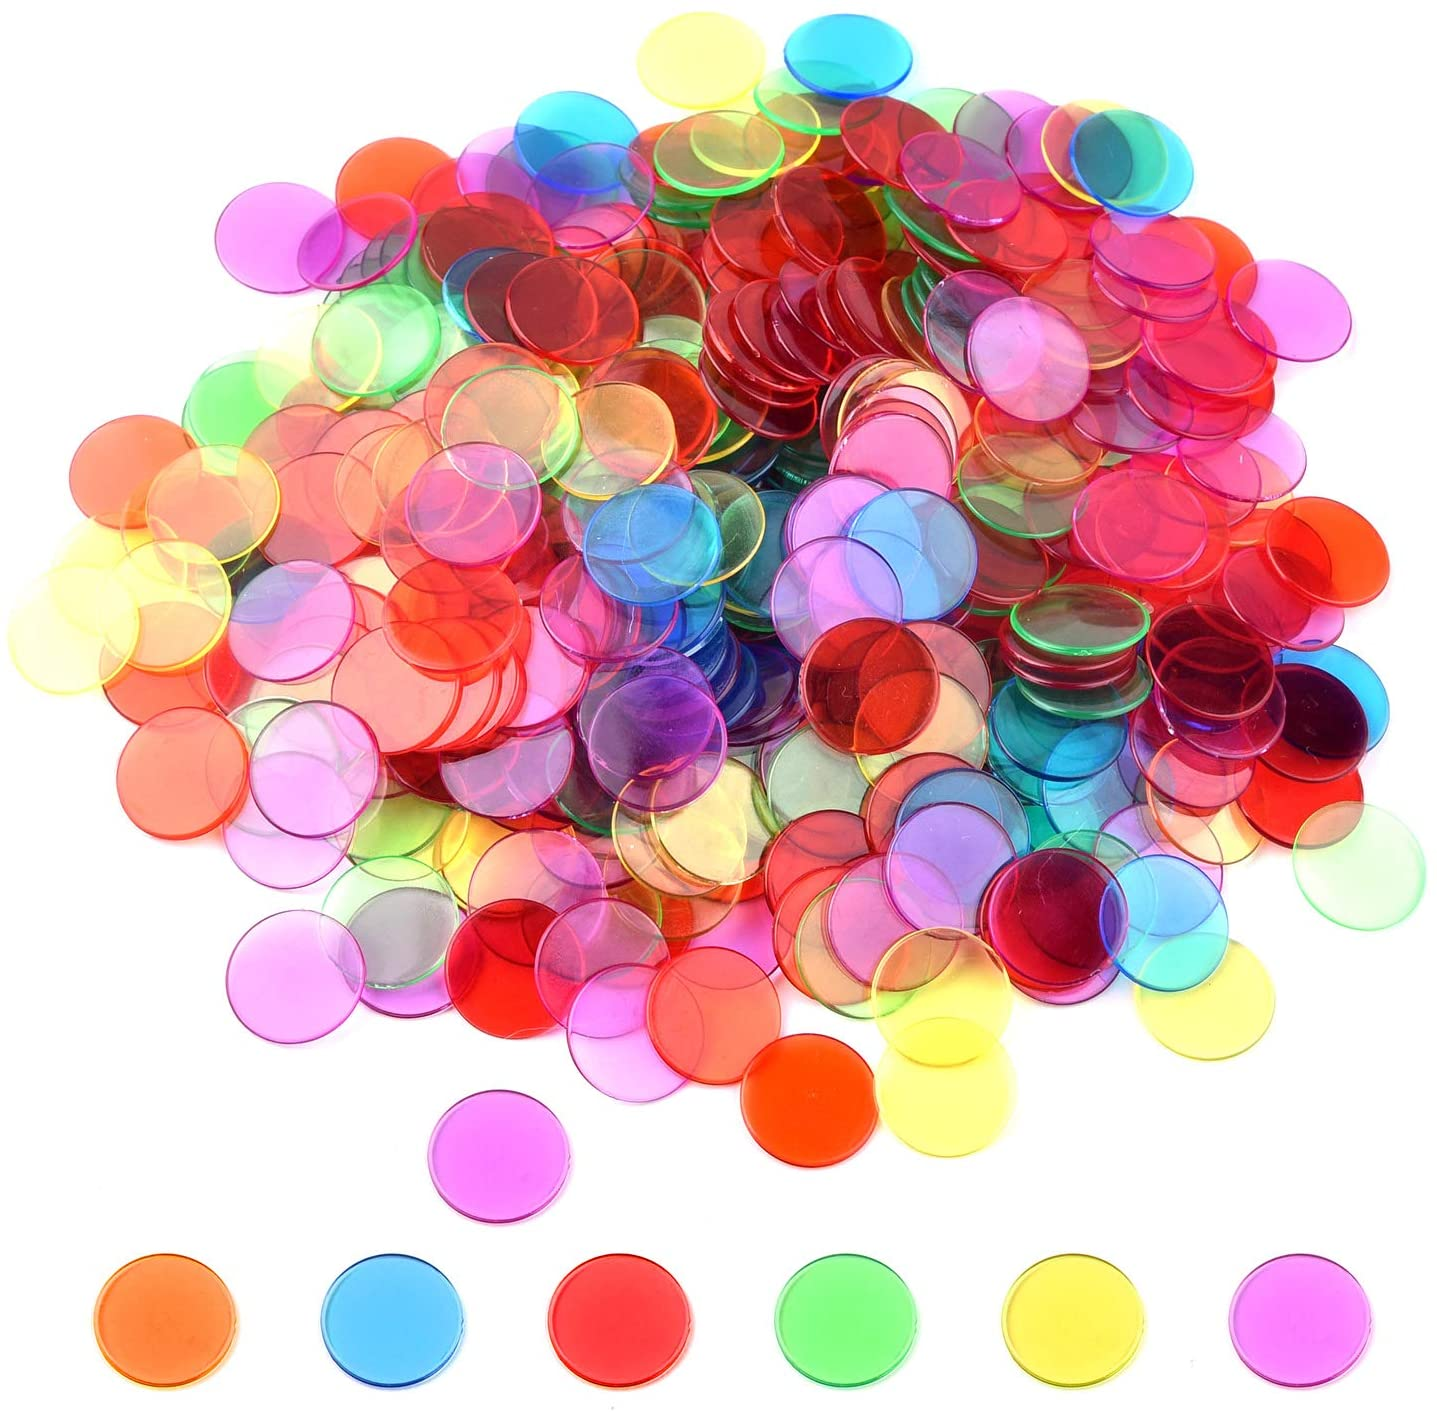 Coopay 300 Pieces Transparent Color Counters Plastic Math Counters Game Counting Bingo Chips Plastic Markers